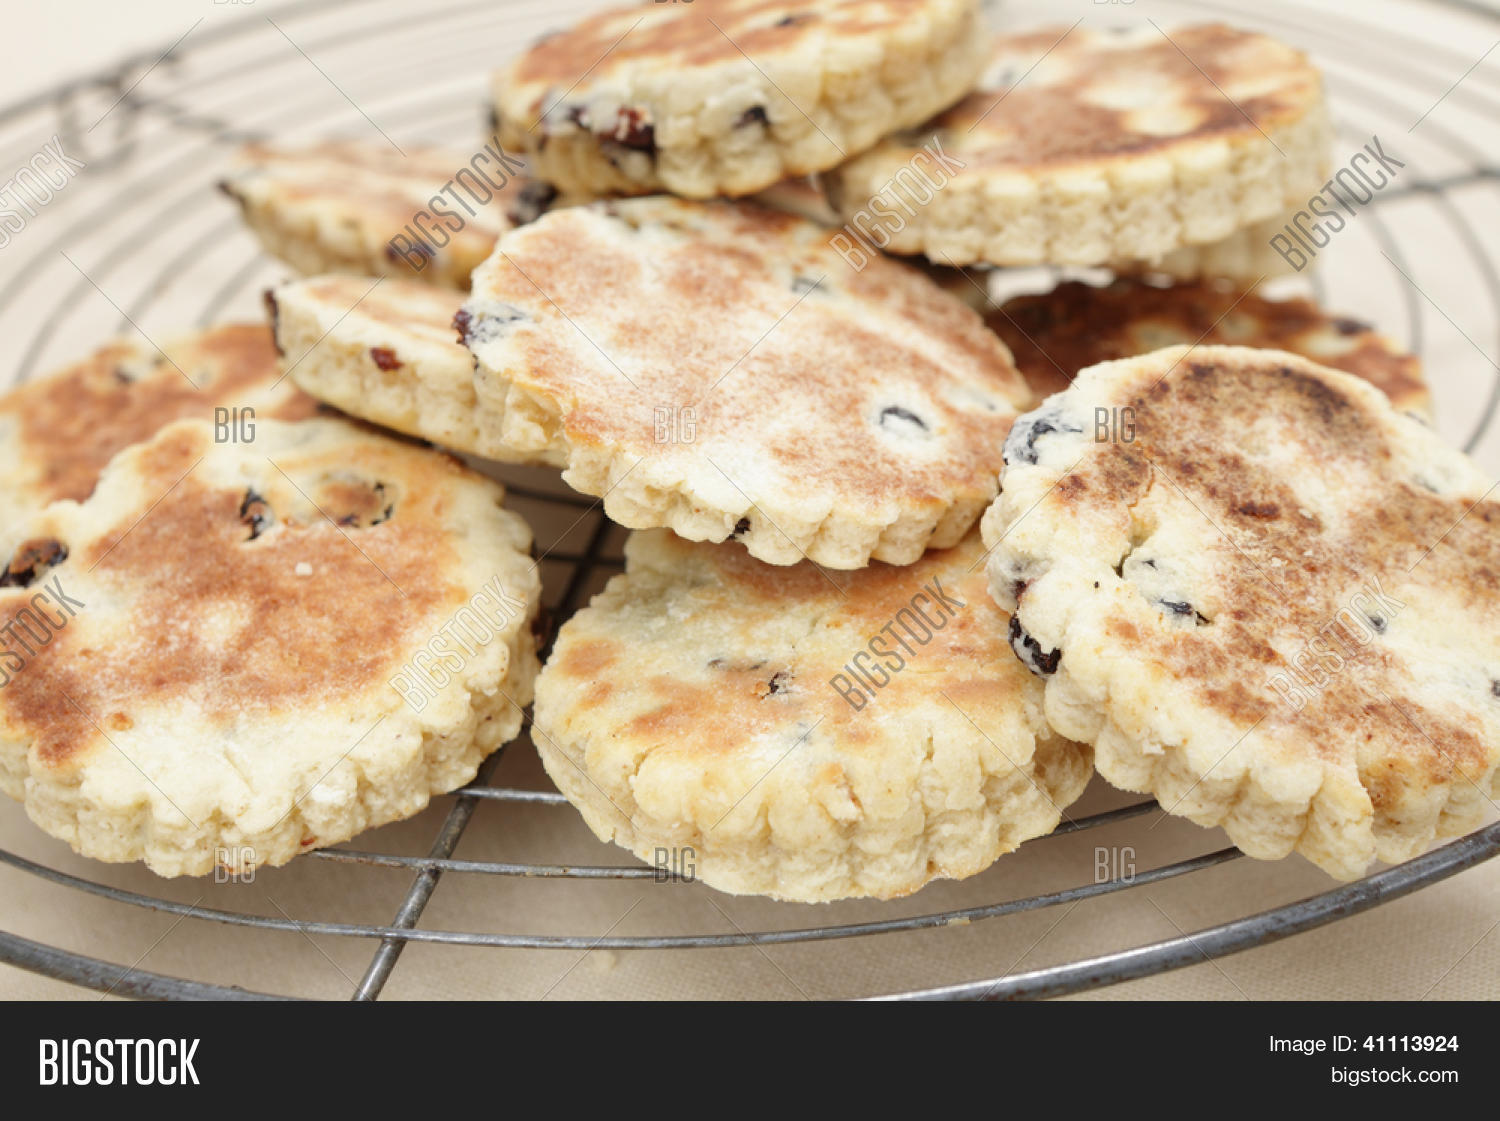 Walisische Küche Wales Newly Home Made Welsh Image Photo Free Trial Bigstock